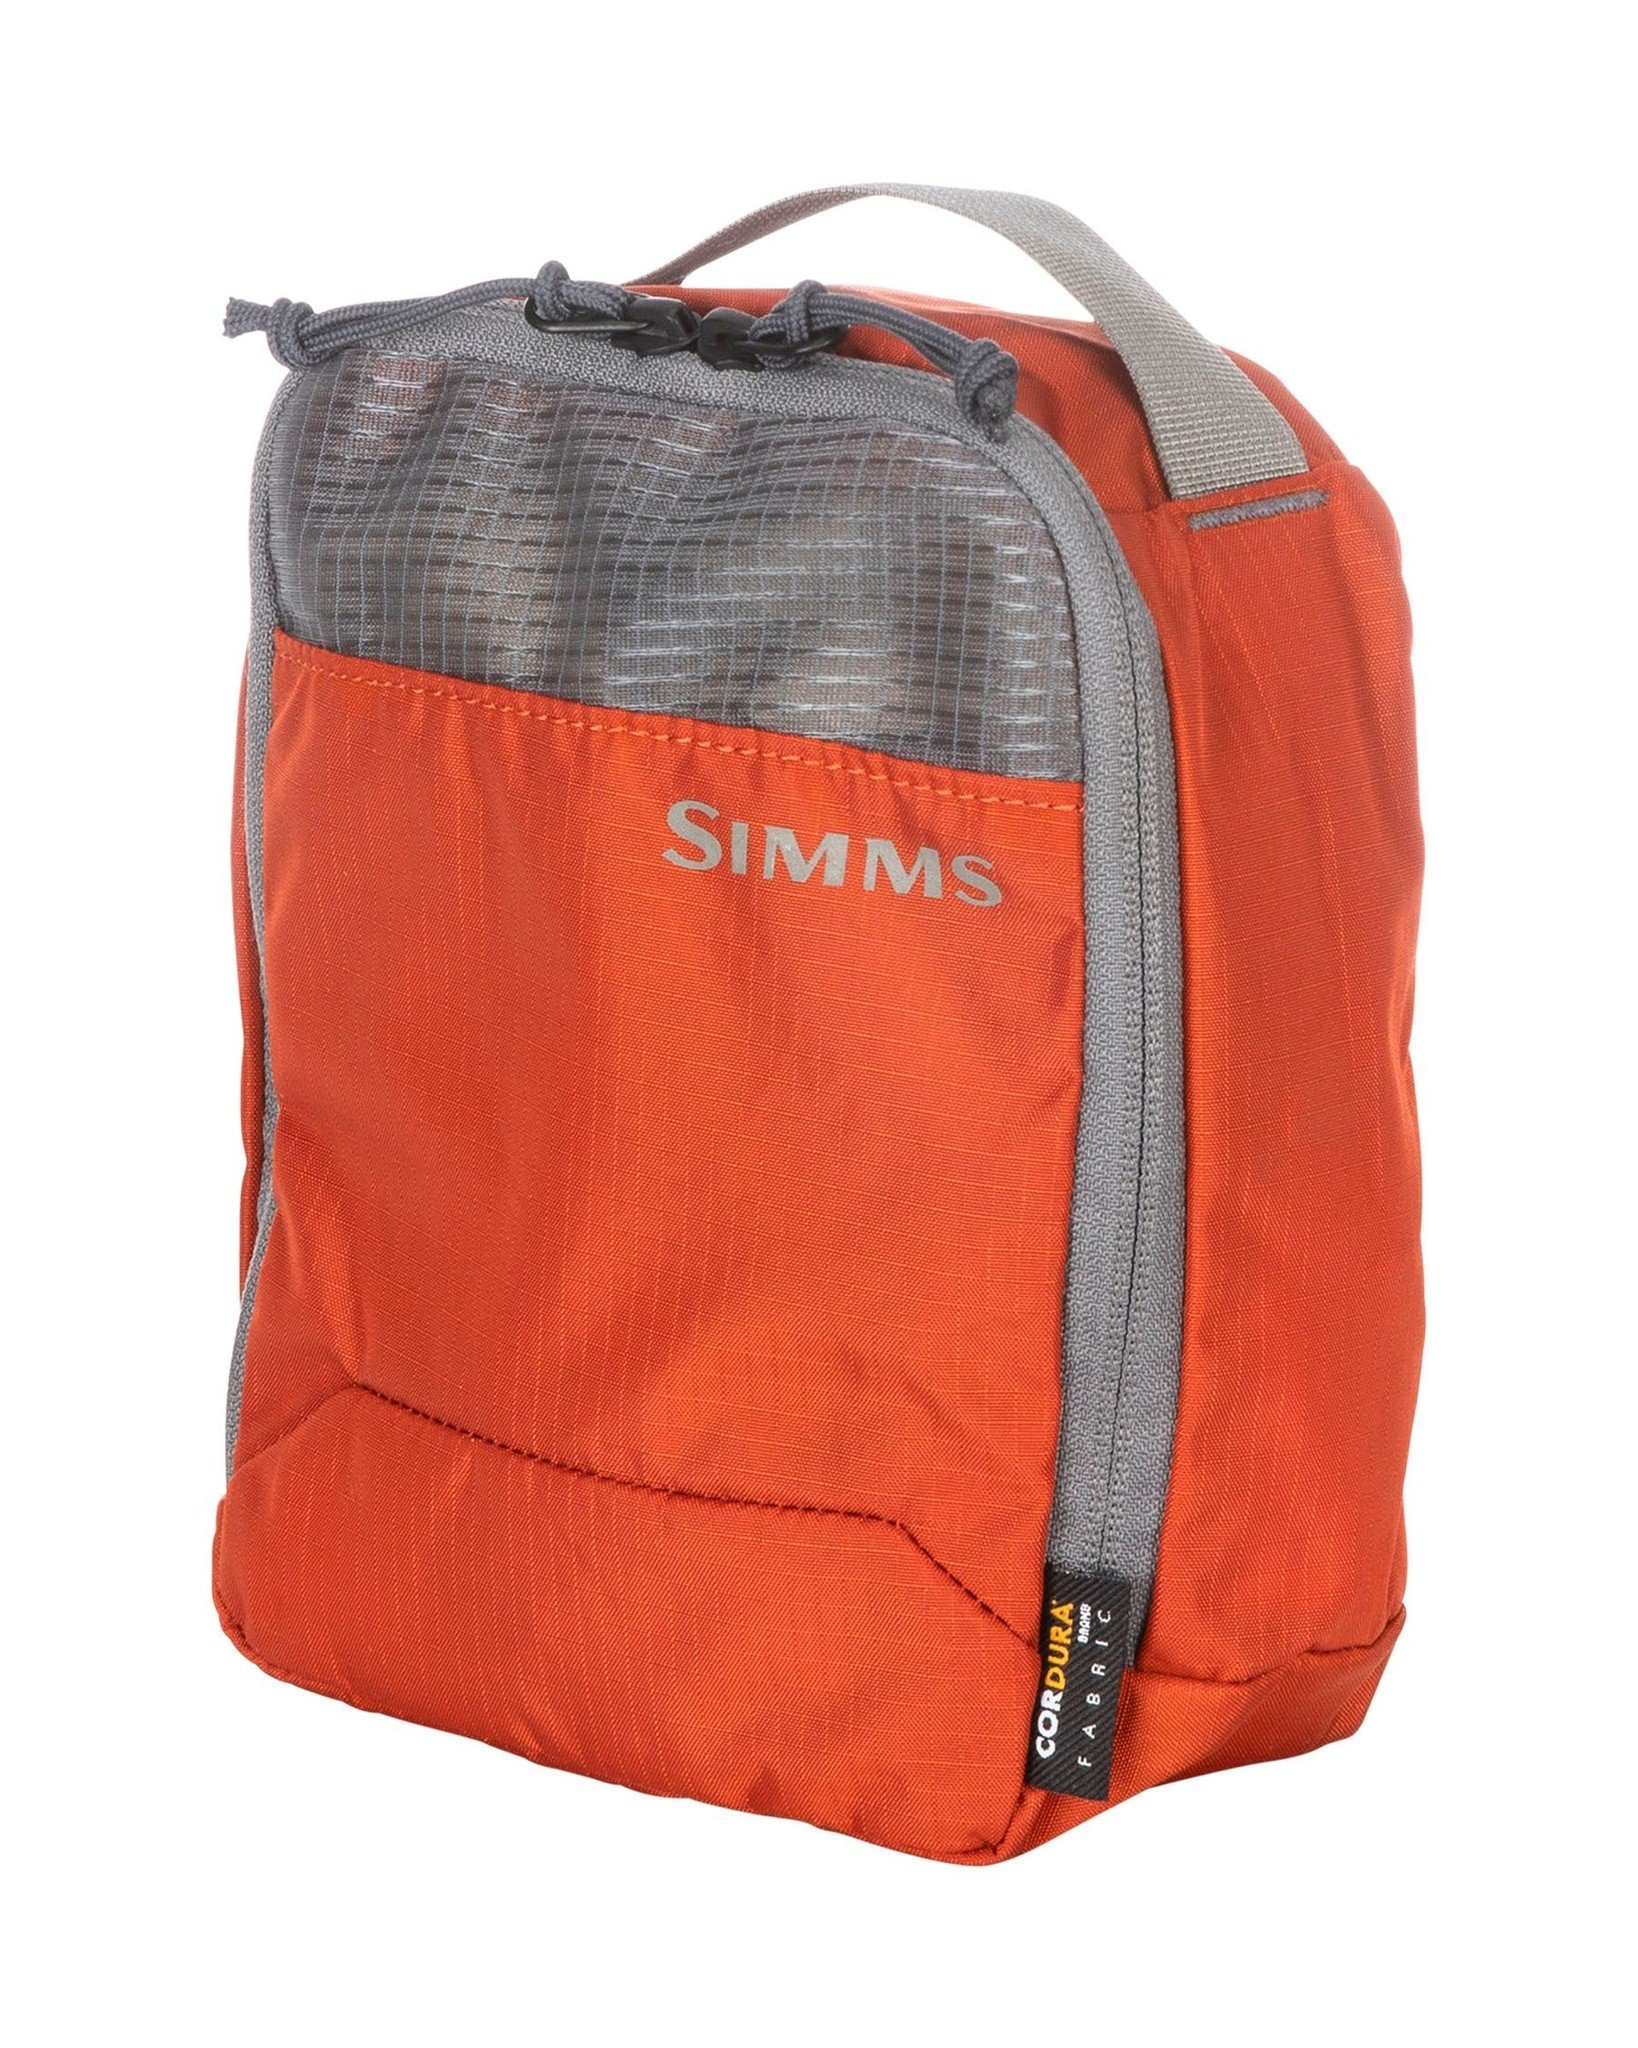 SIMMS SIMMS GTS PACKING KIT - 3 PACK